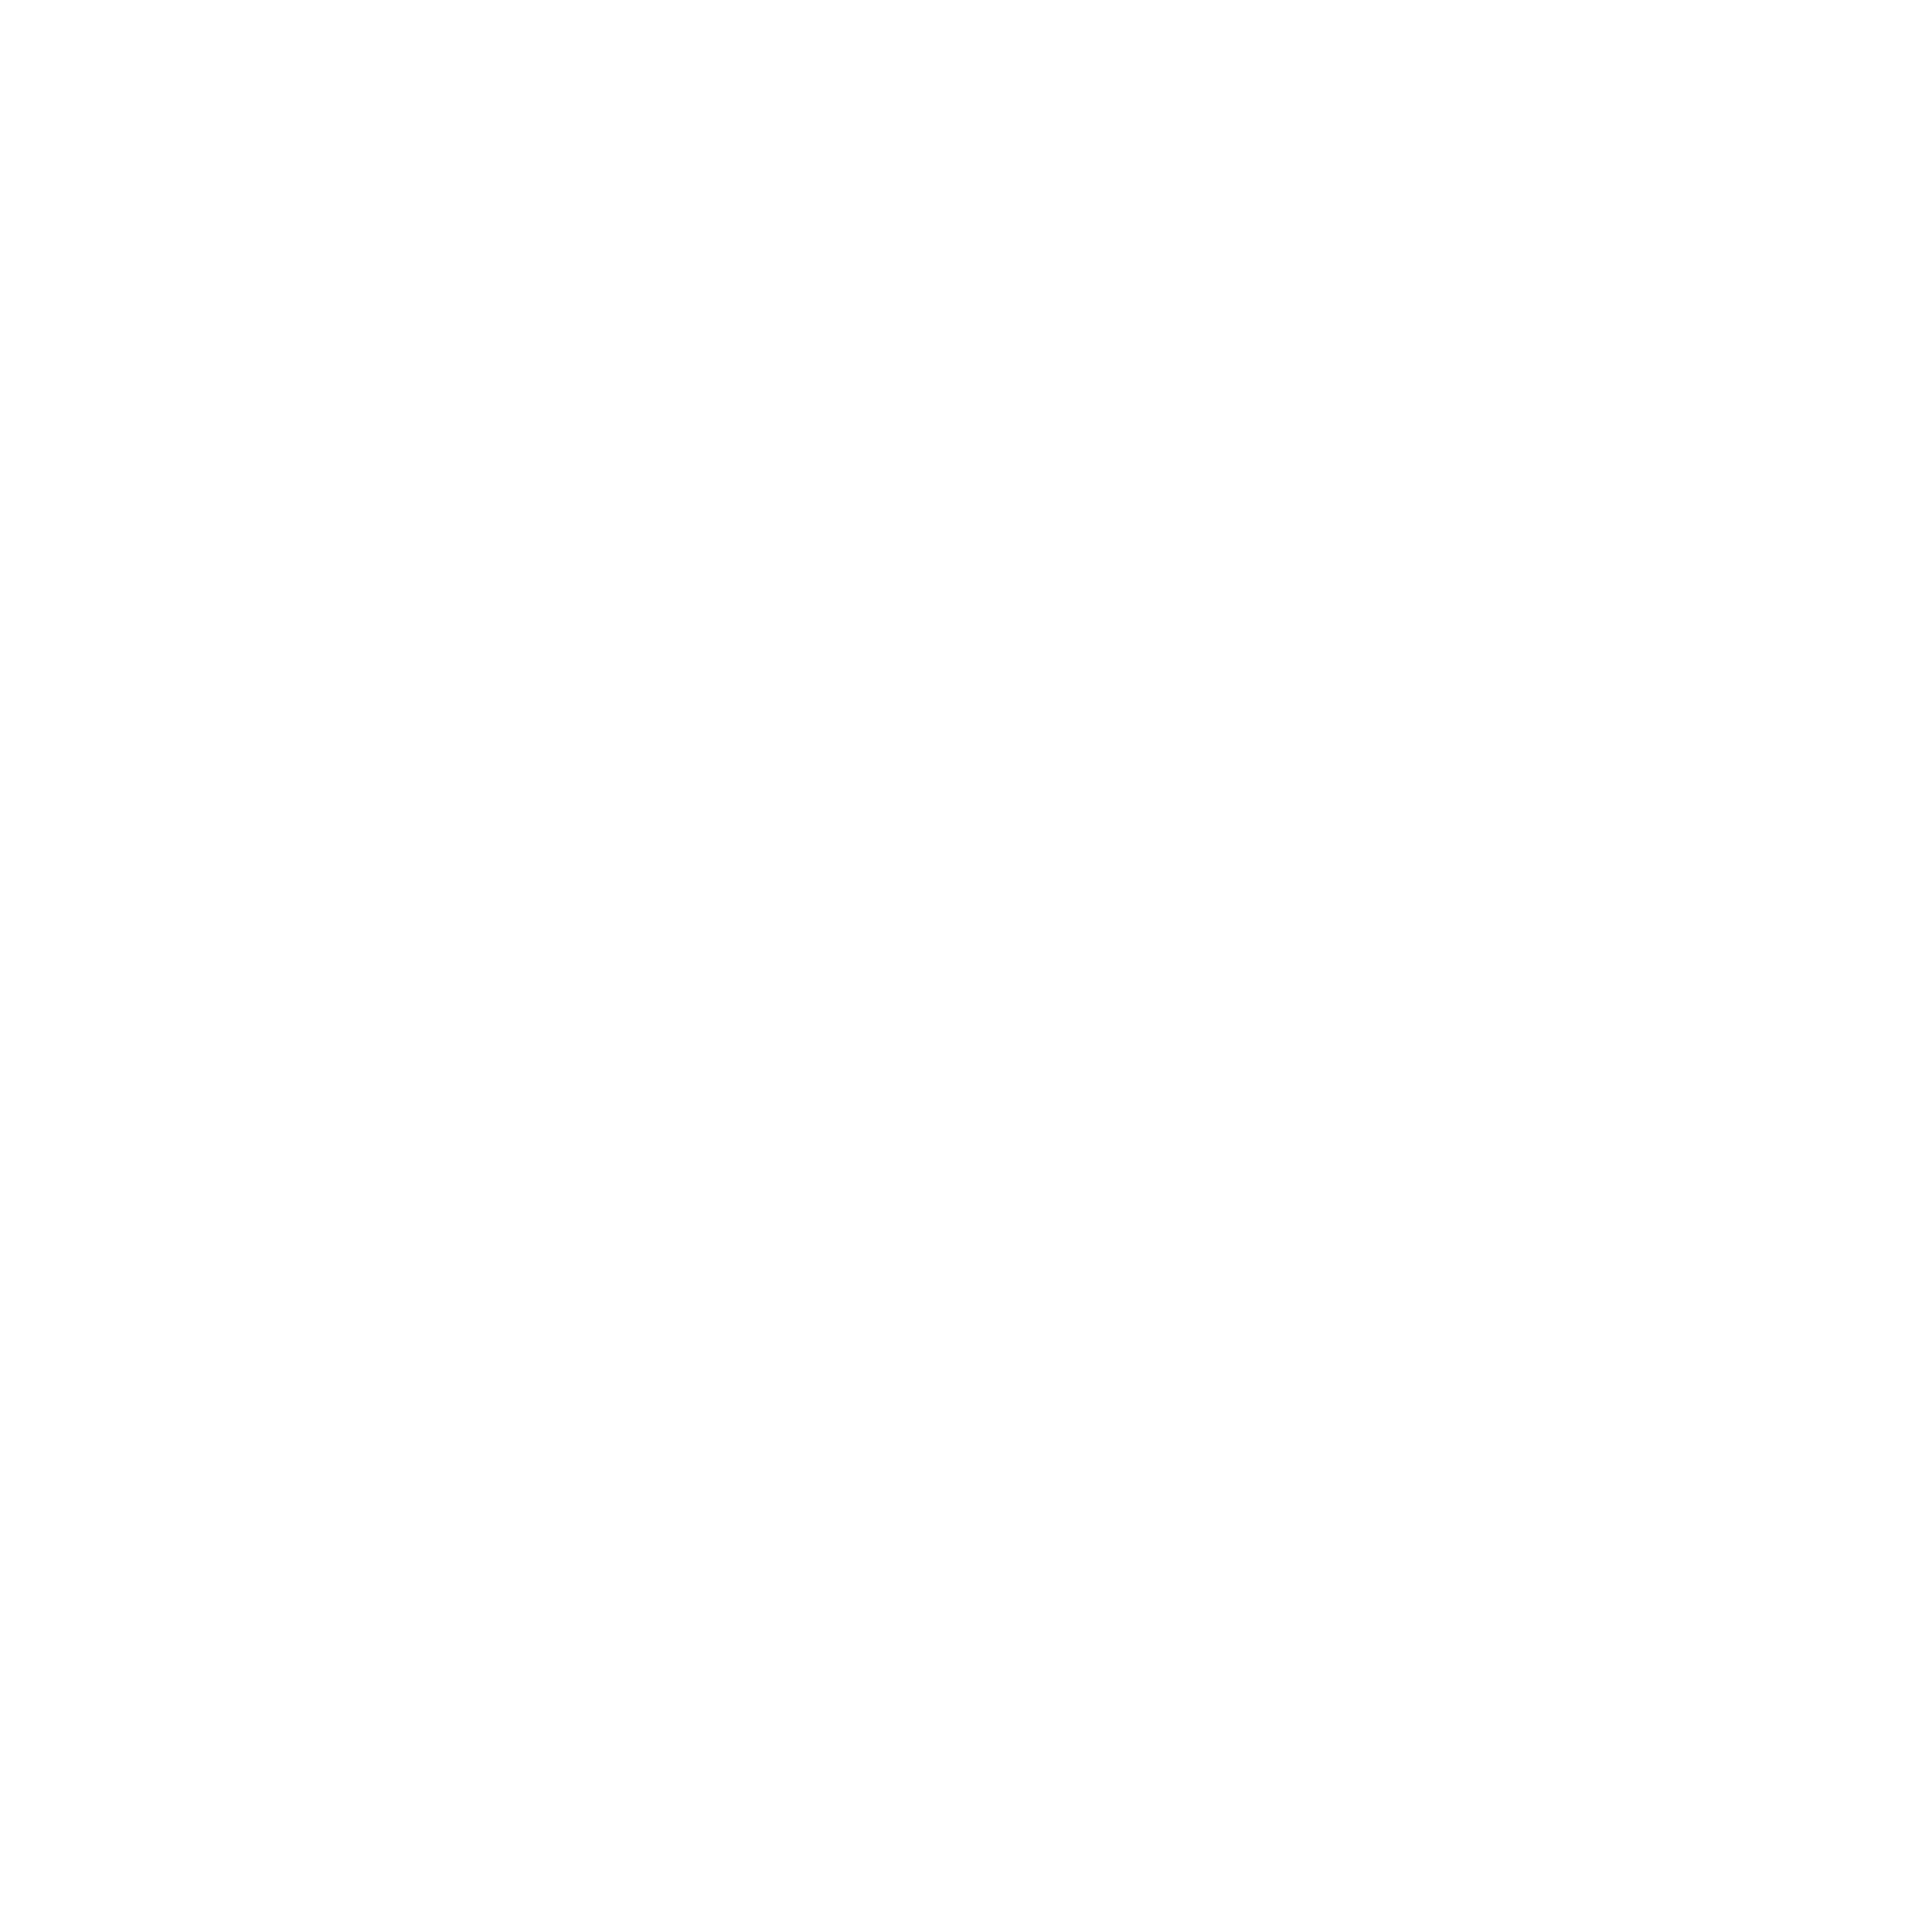 THE CROWNED SOCIAL CLUB